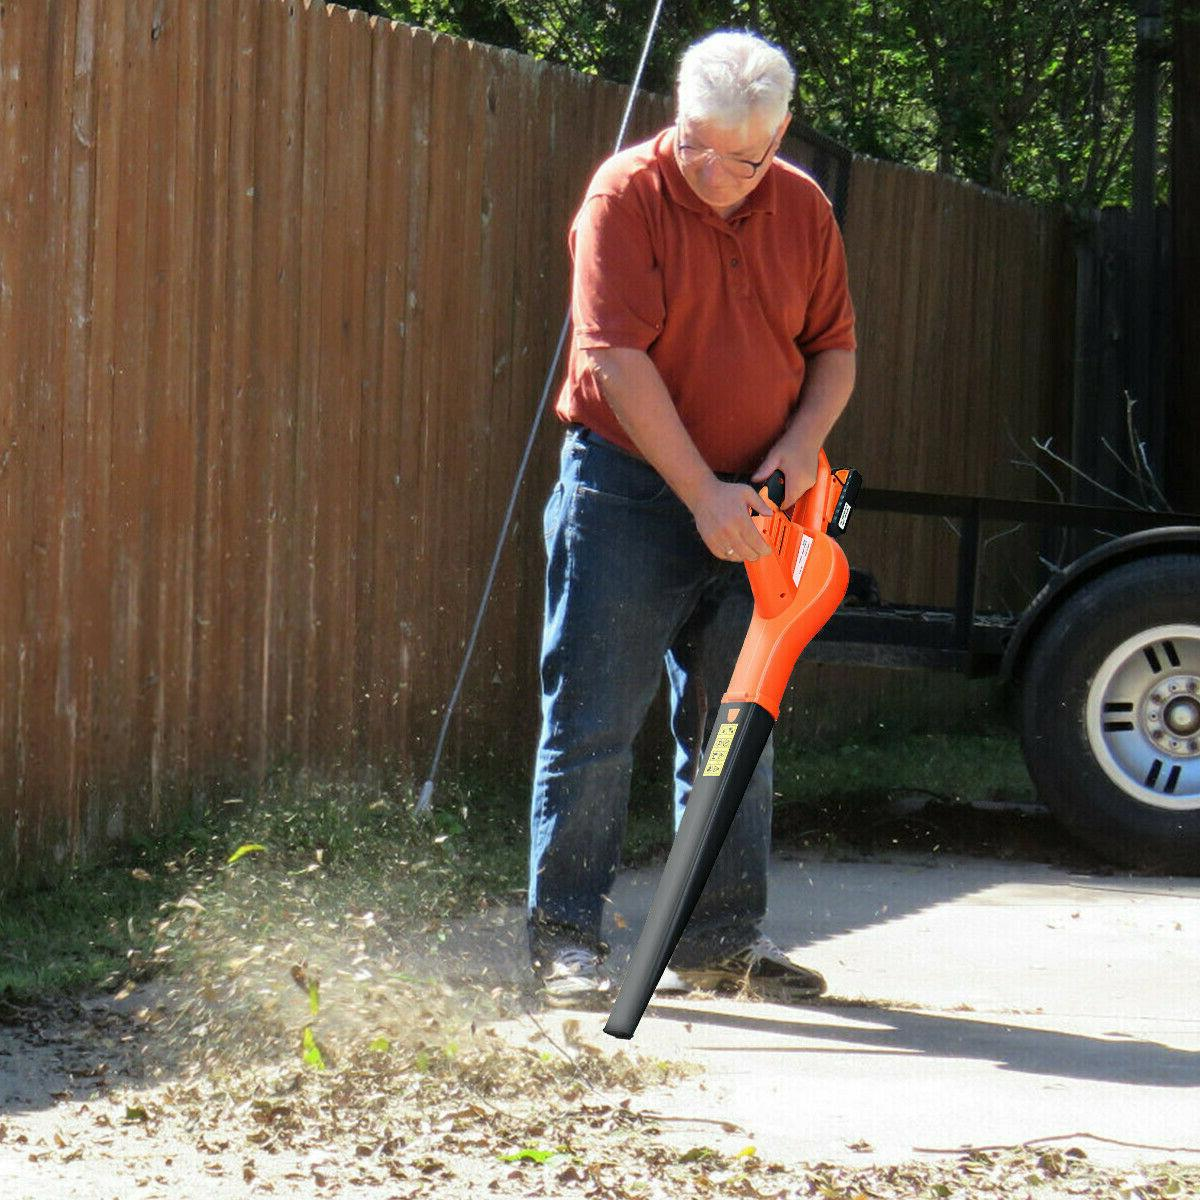 Leaf Blower Battery Operated Handheld mph Lightweight New